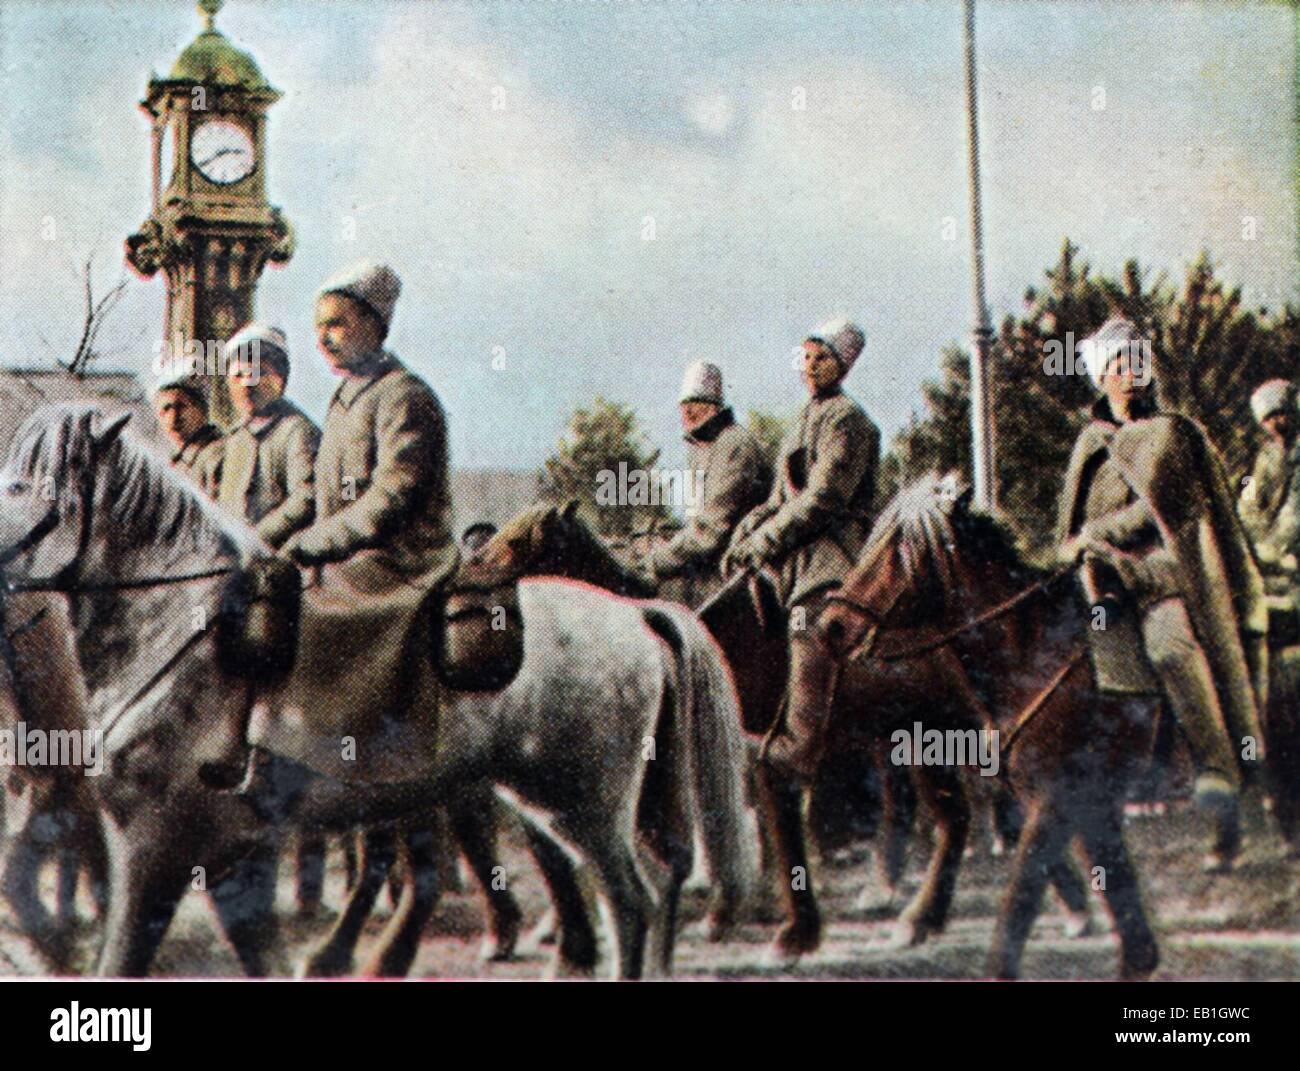 The contemporary colorized German propaganda photo shows Russian cavalry in 1918. Photo: Neumann Archive - NO WIRE - Stock Image